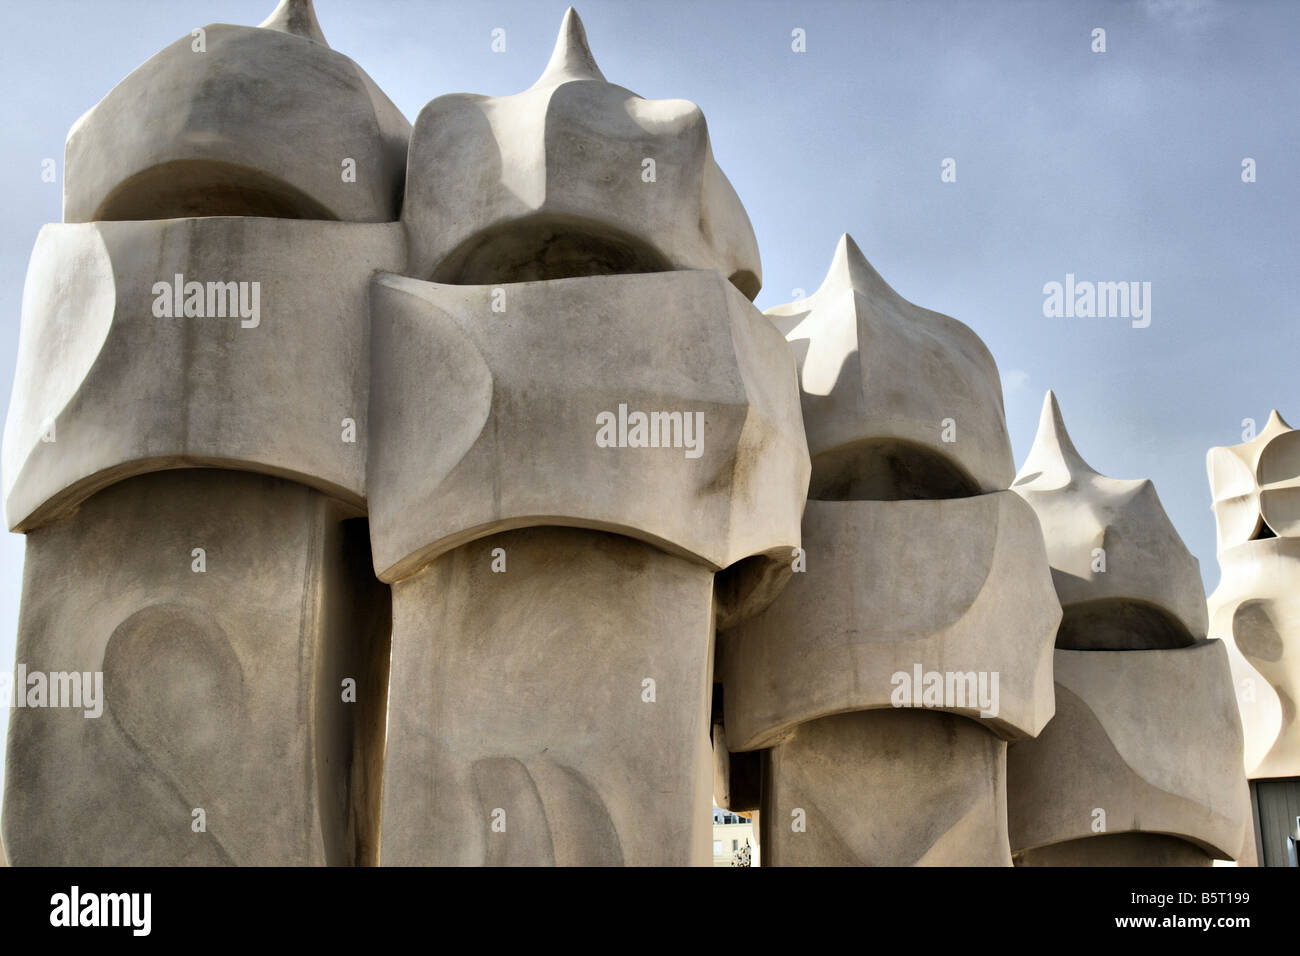 Chimneys of Casa Mila Barcelona, the exterior of this iconic building designed by Antoni Gaudi Stock Photo